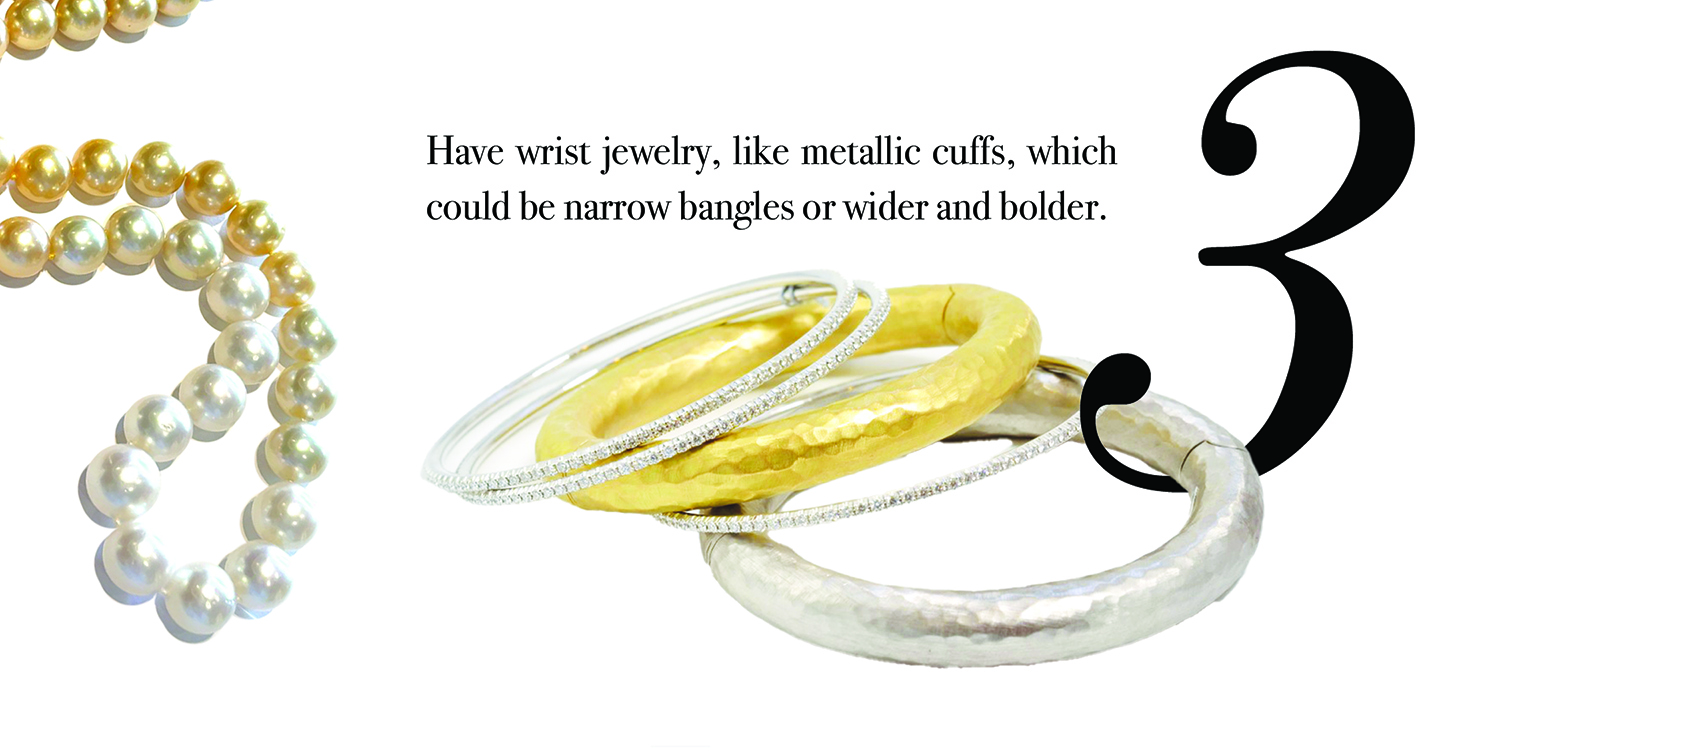 Your Jewelry Wardrobe Tip #3: Have wrist jewelry, like metallic cuffs, which could be narrow bangles or wider and bolder.